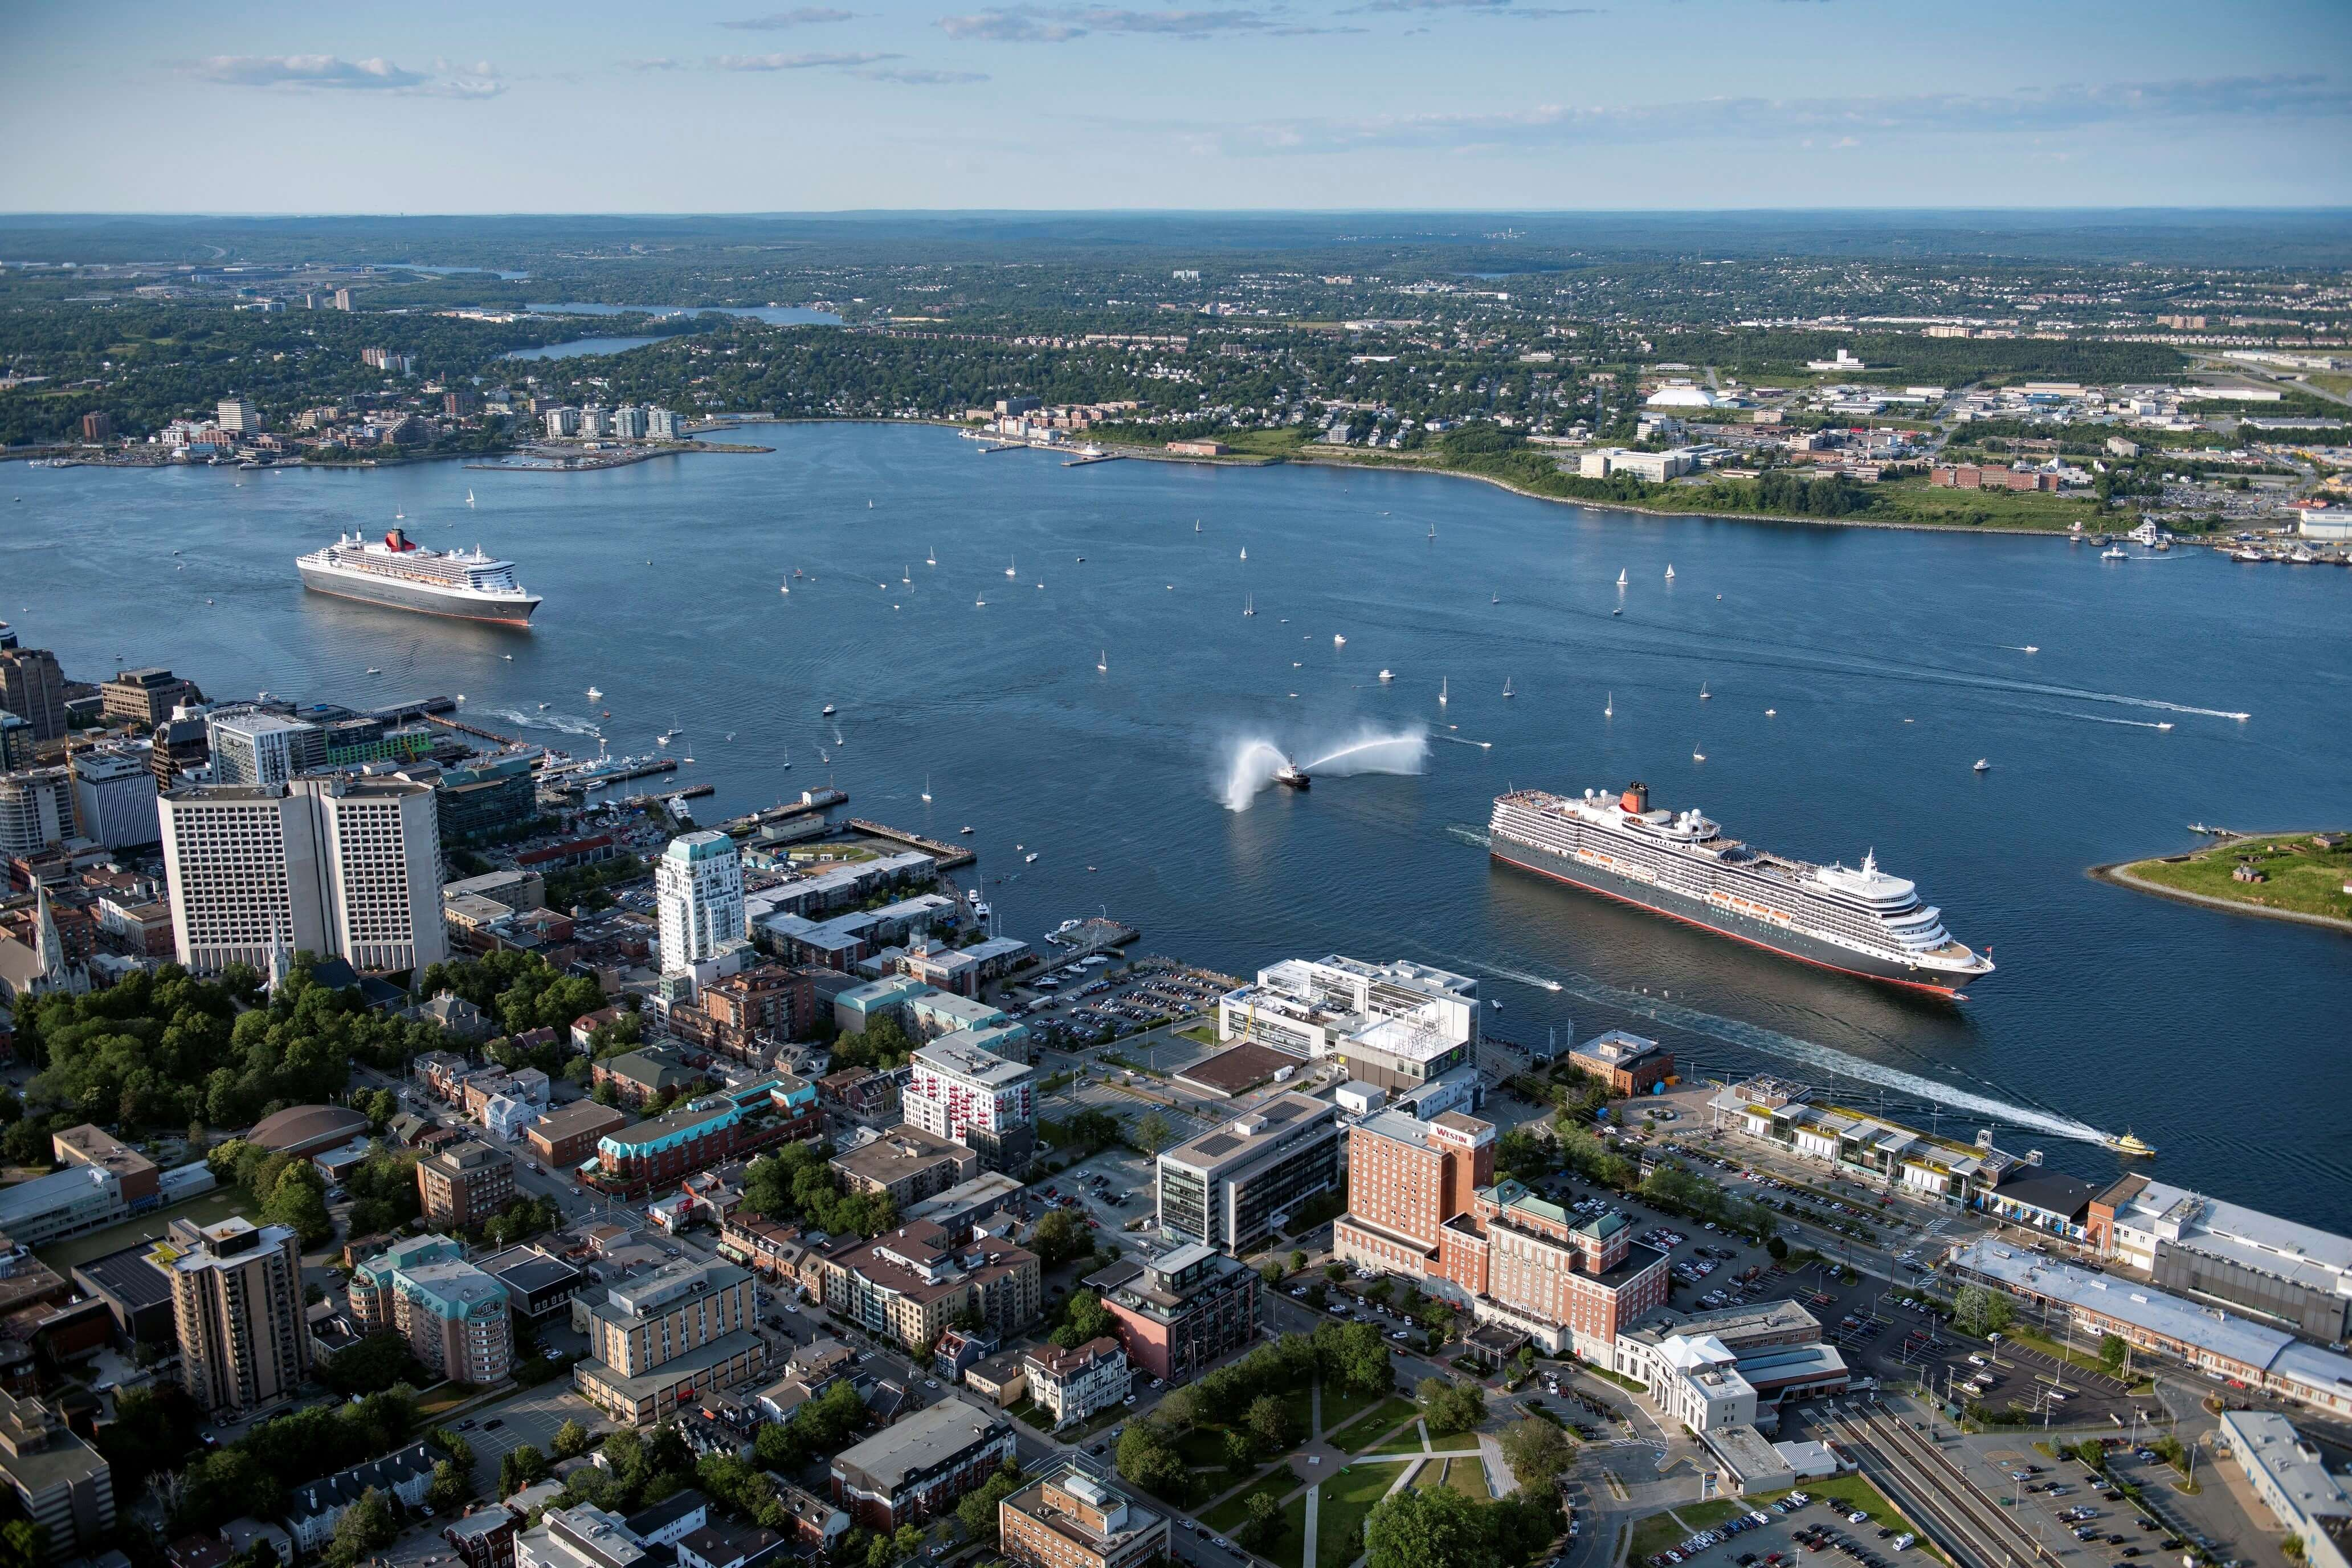 Queen Mary 2 meets Queen Elizabeth in Halifax for the first time